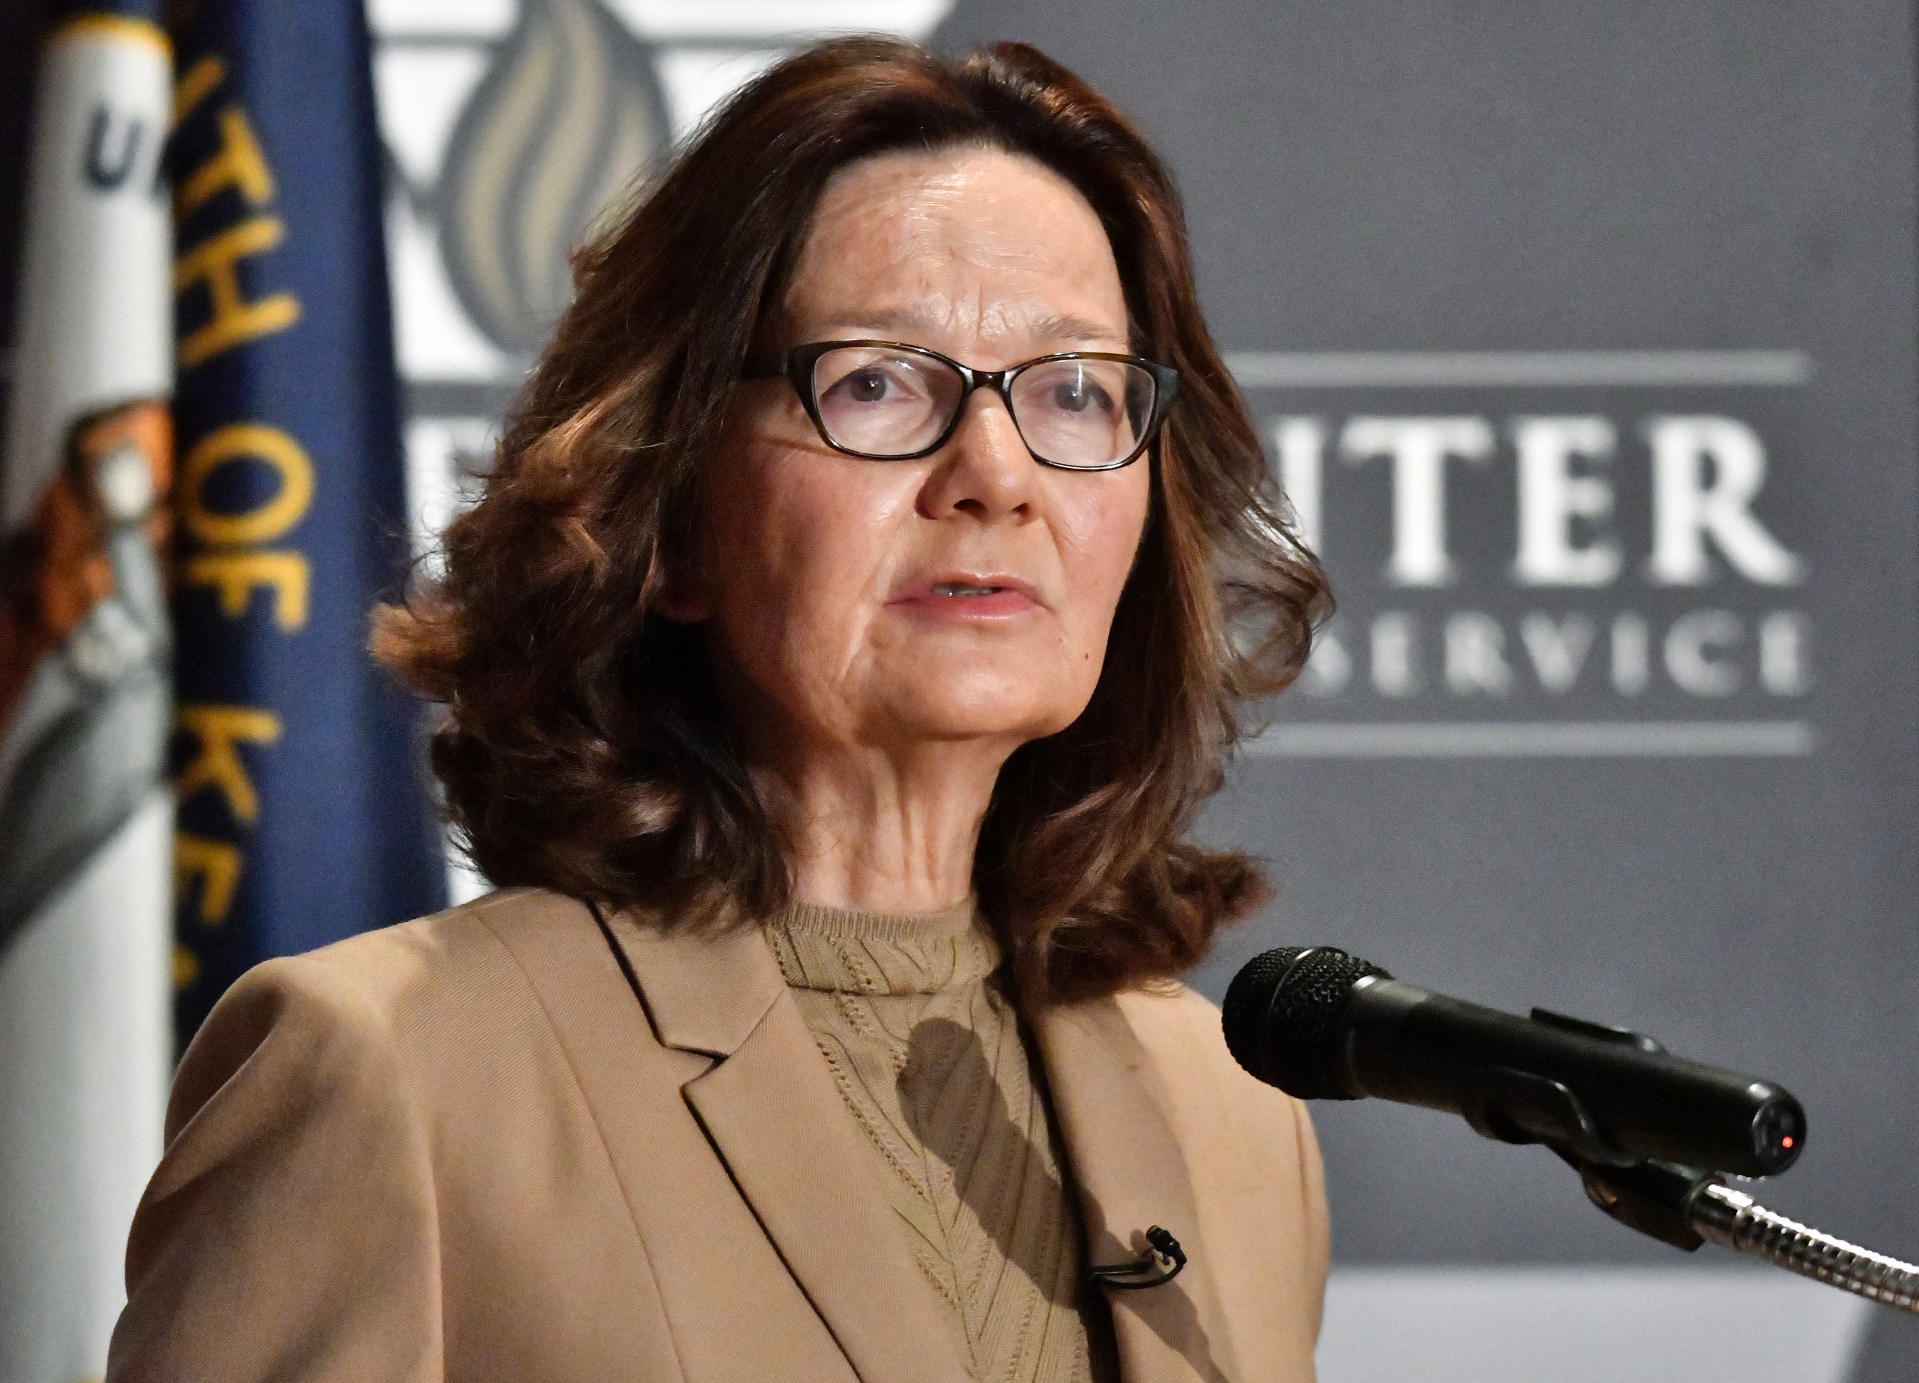 CIA Director Haspel is quietly working hard (and smart) to make keep us safe from national security threats